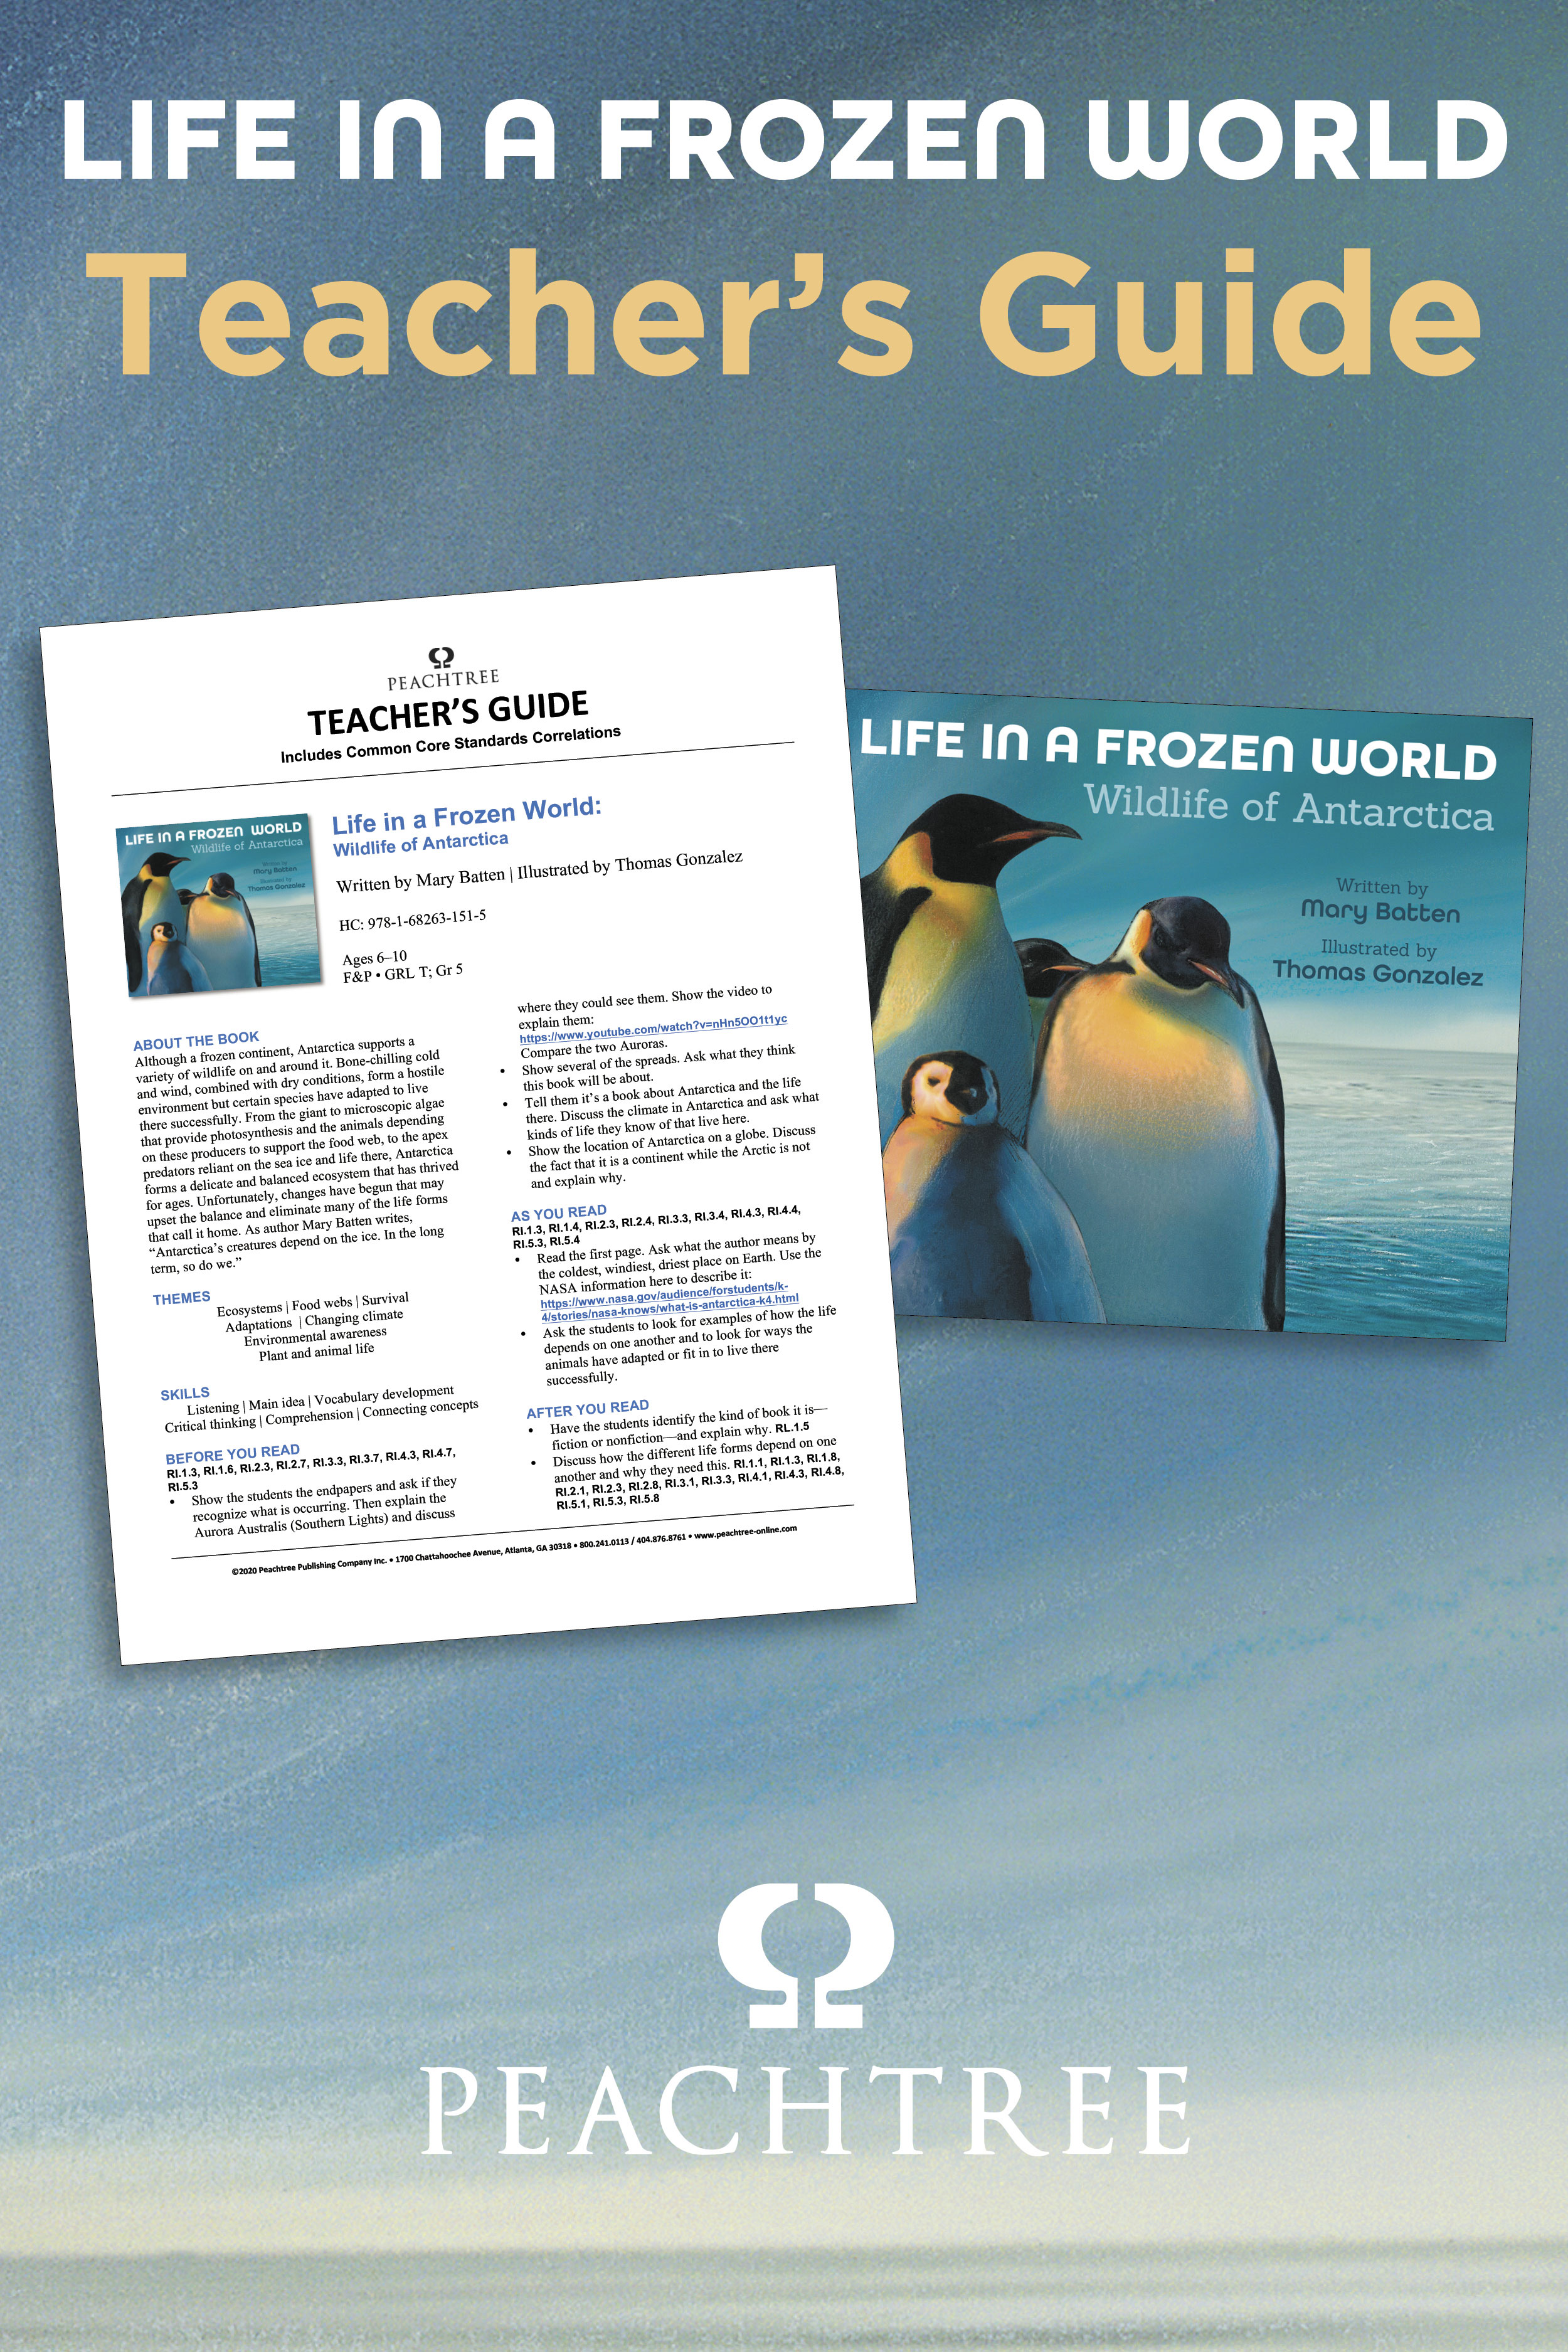 Life in a Frozen World TG